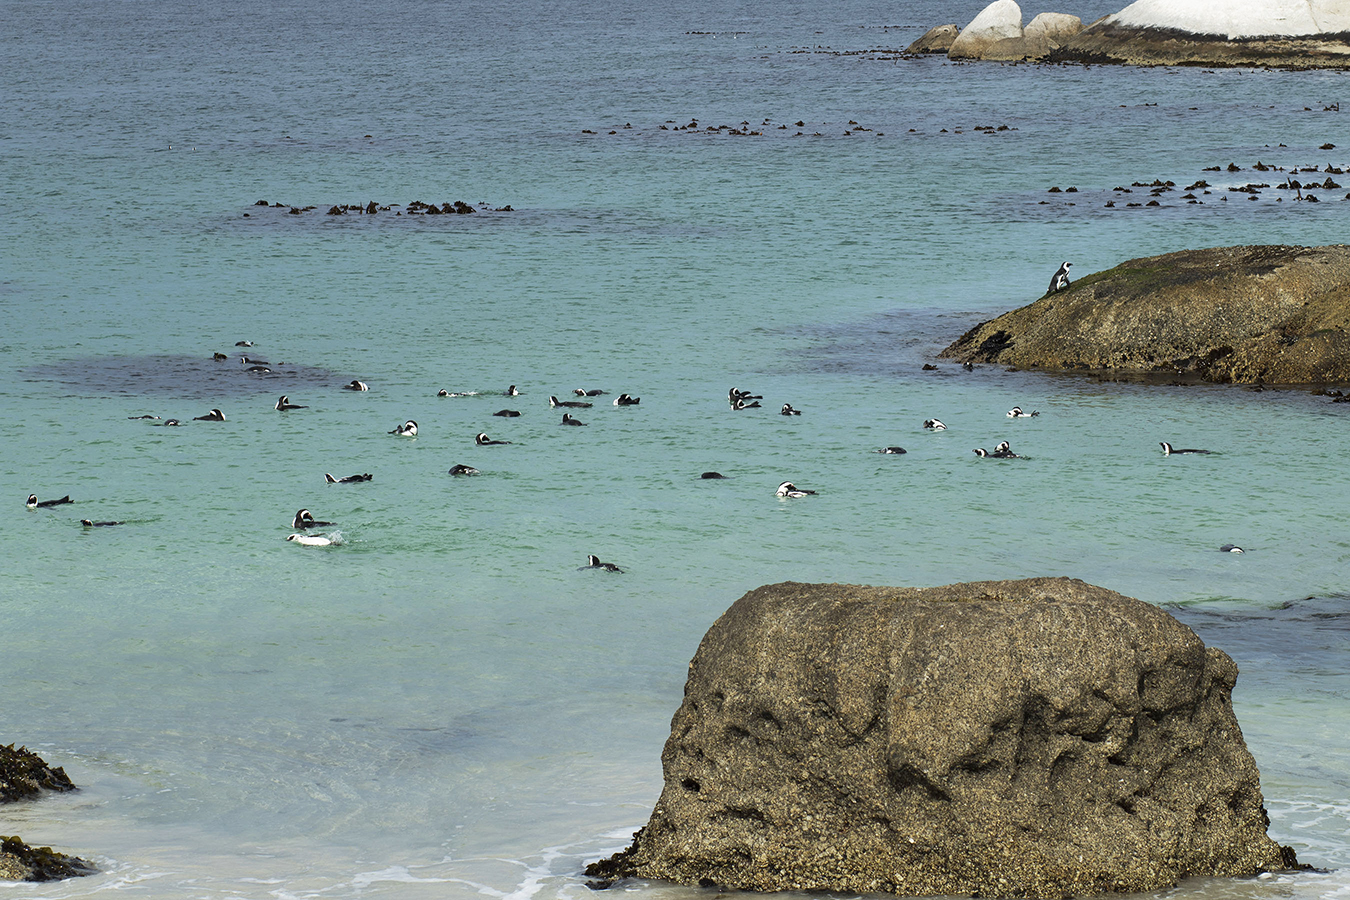 Penguins at the Boulder Beach